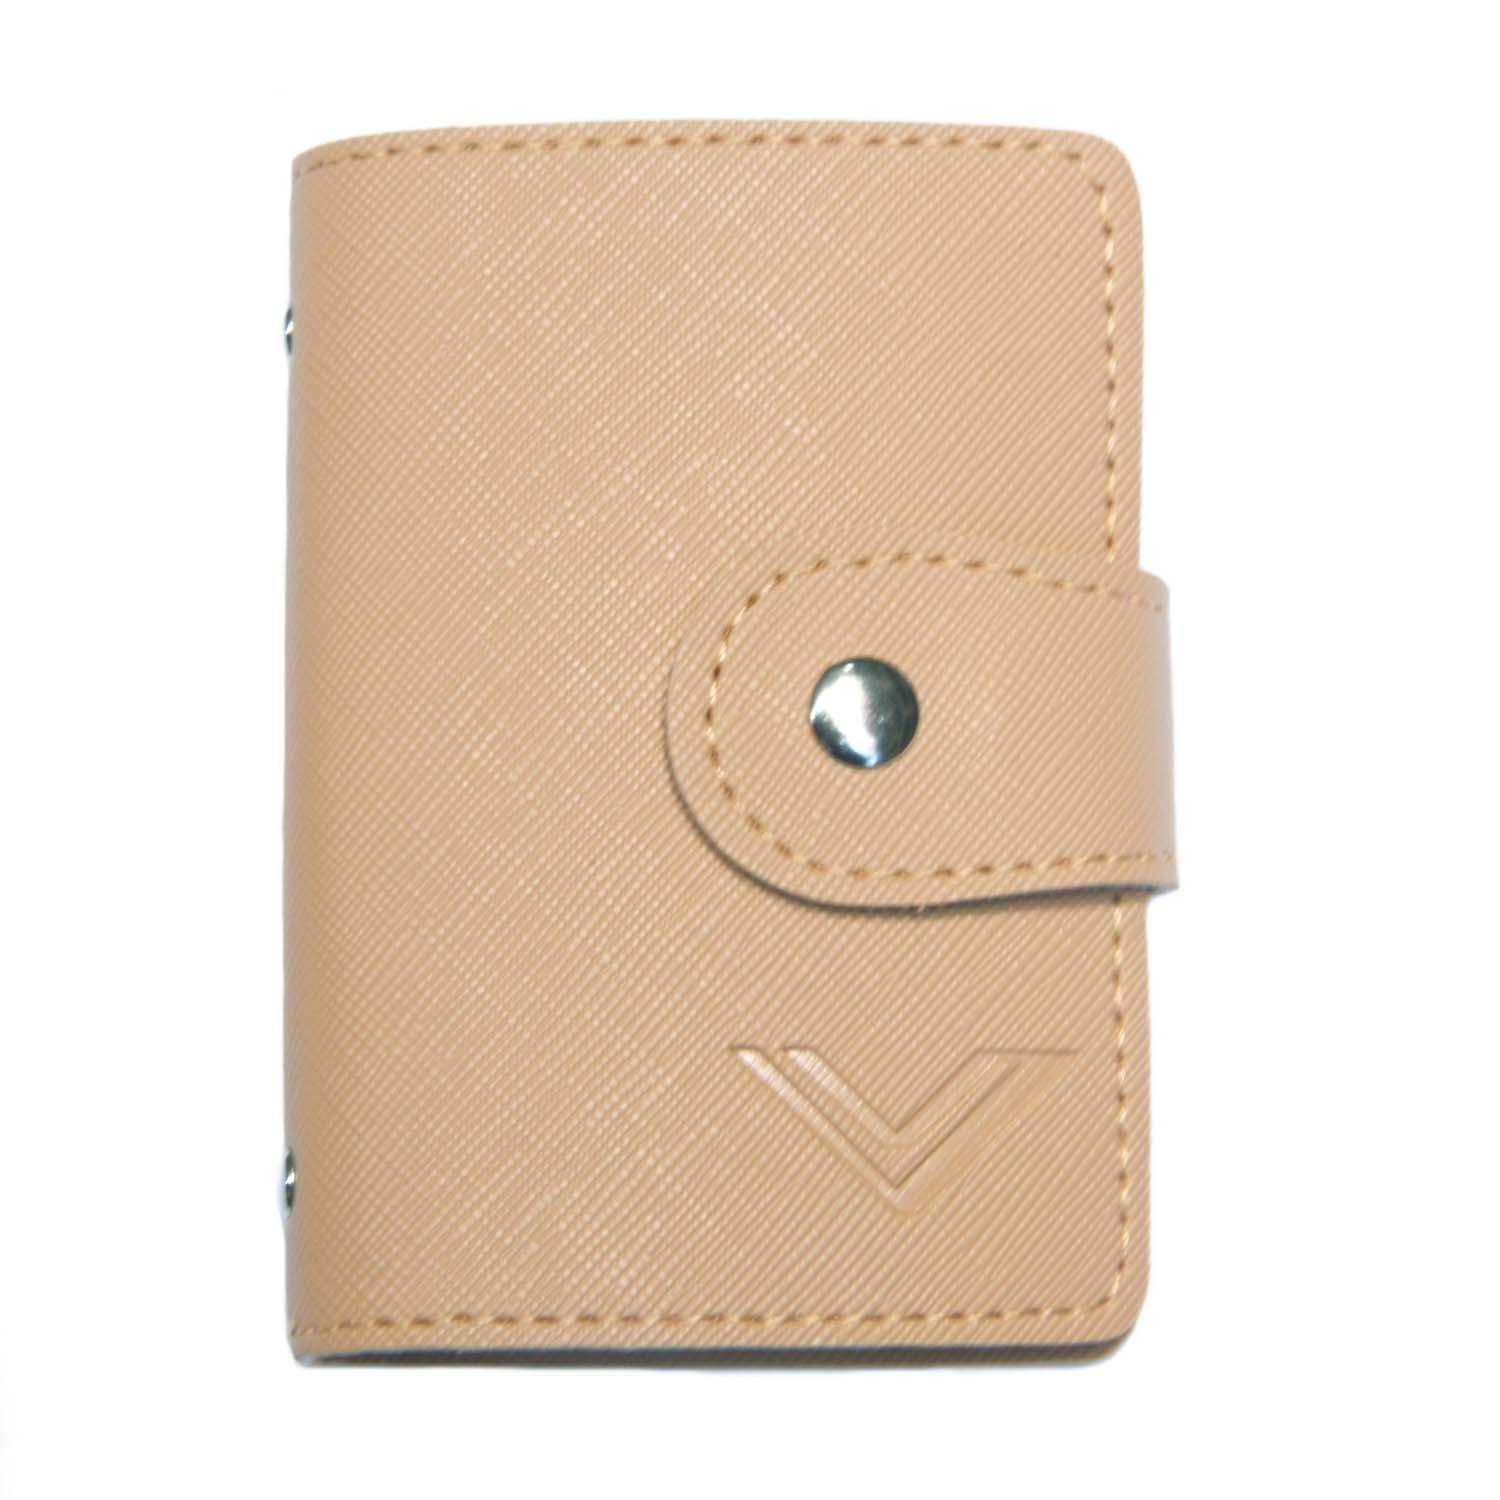 Womens Card Holders for sale - Card Holder Bags online brands ...